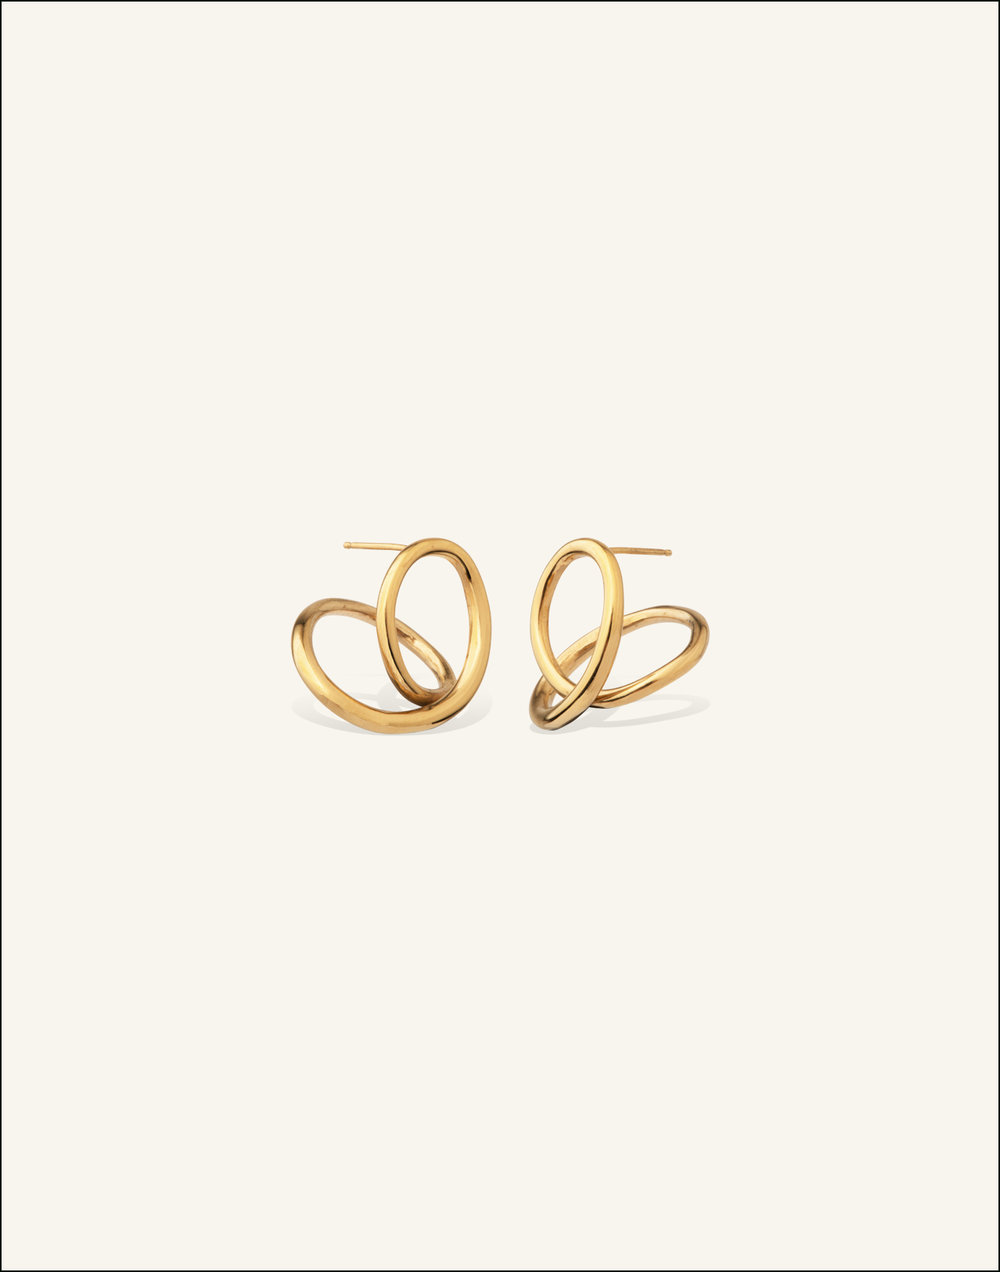 Completedworks-Earrings-The-Labyrinth-2-1.jpg